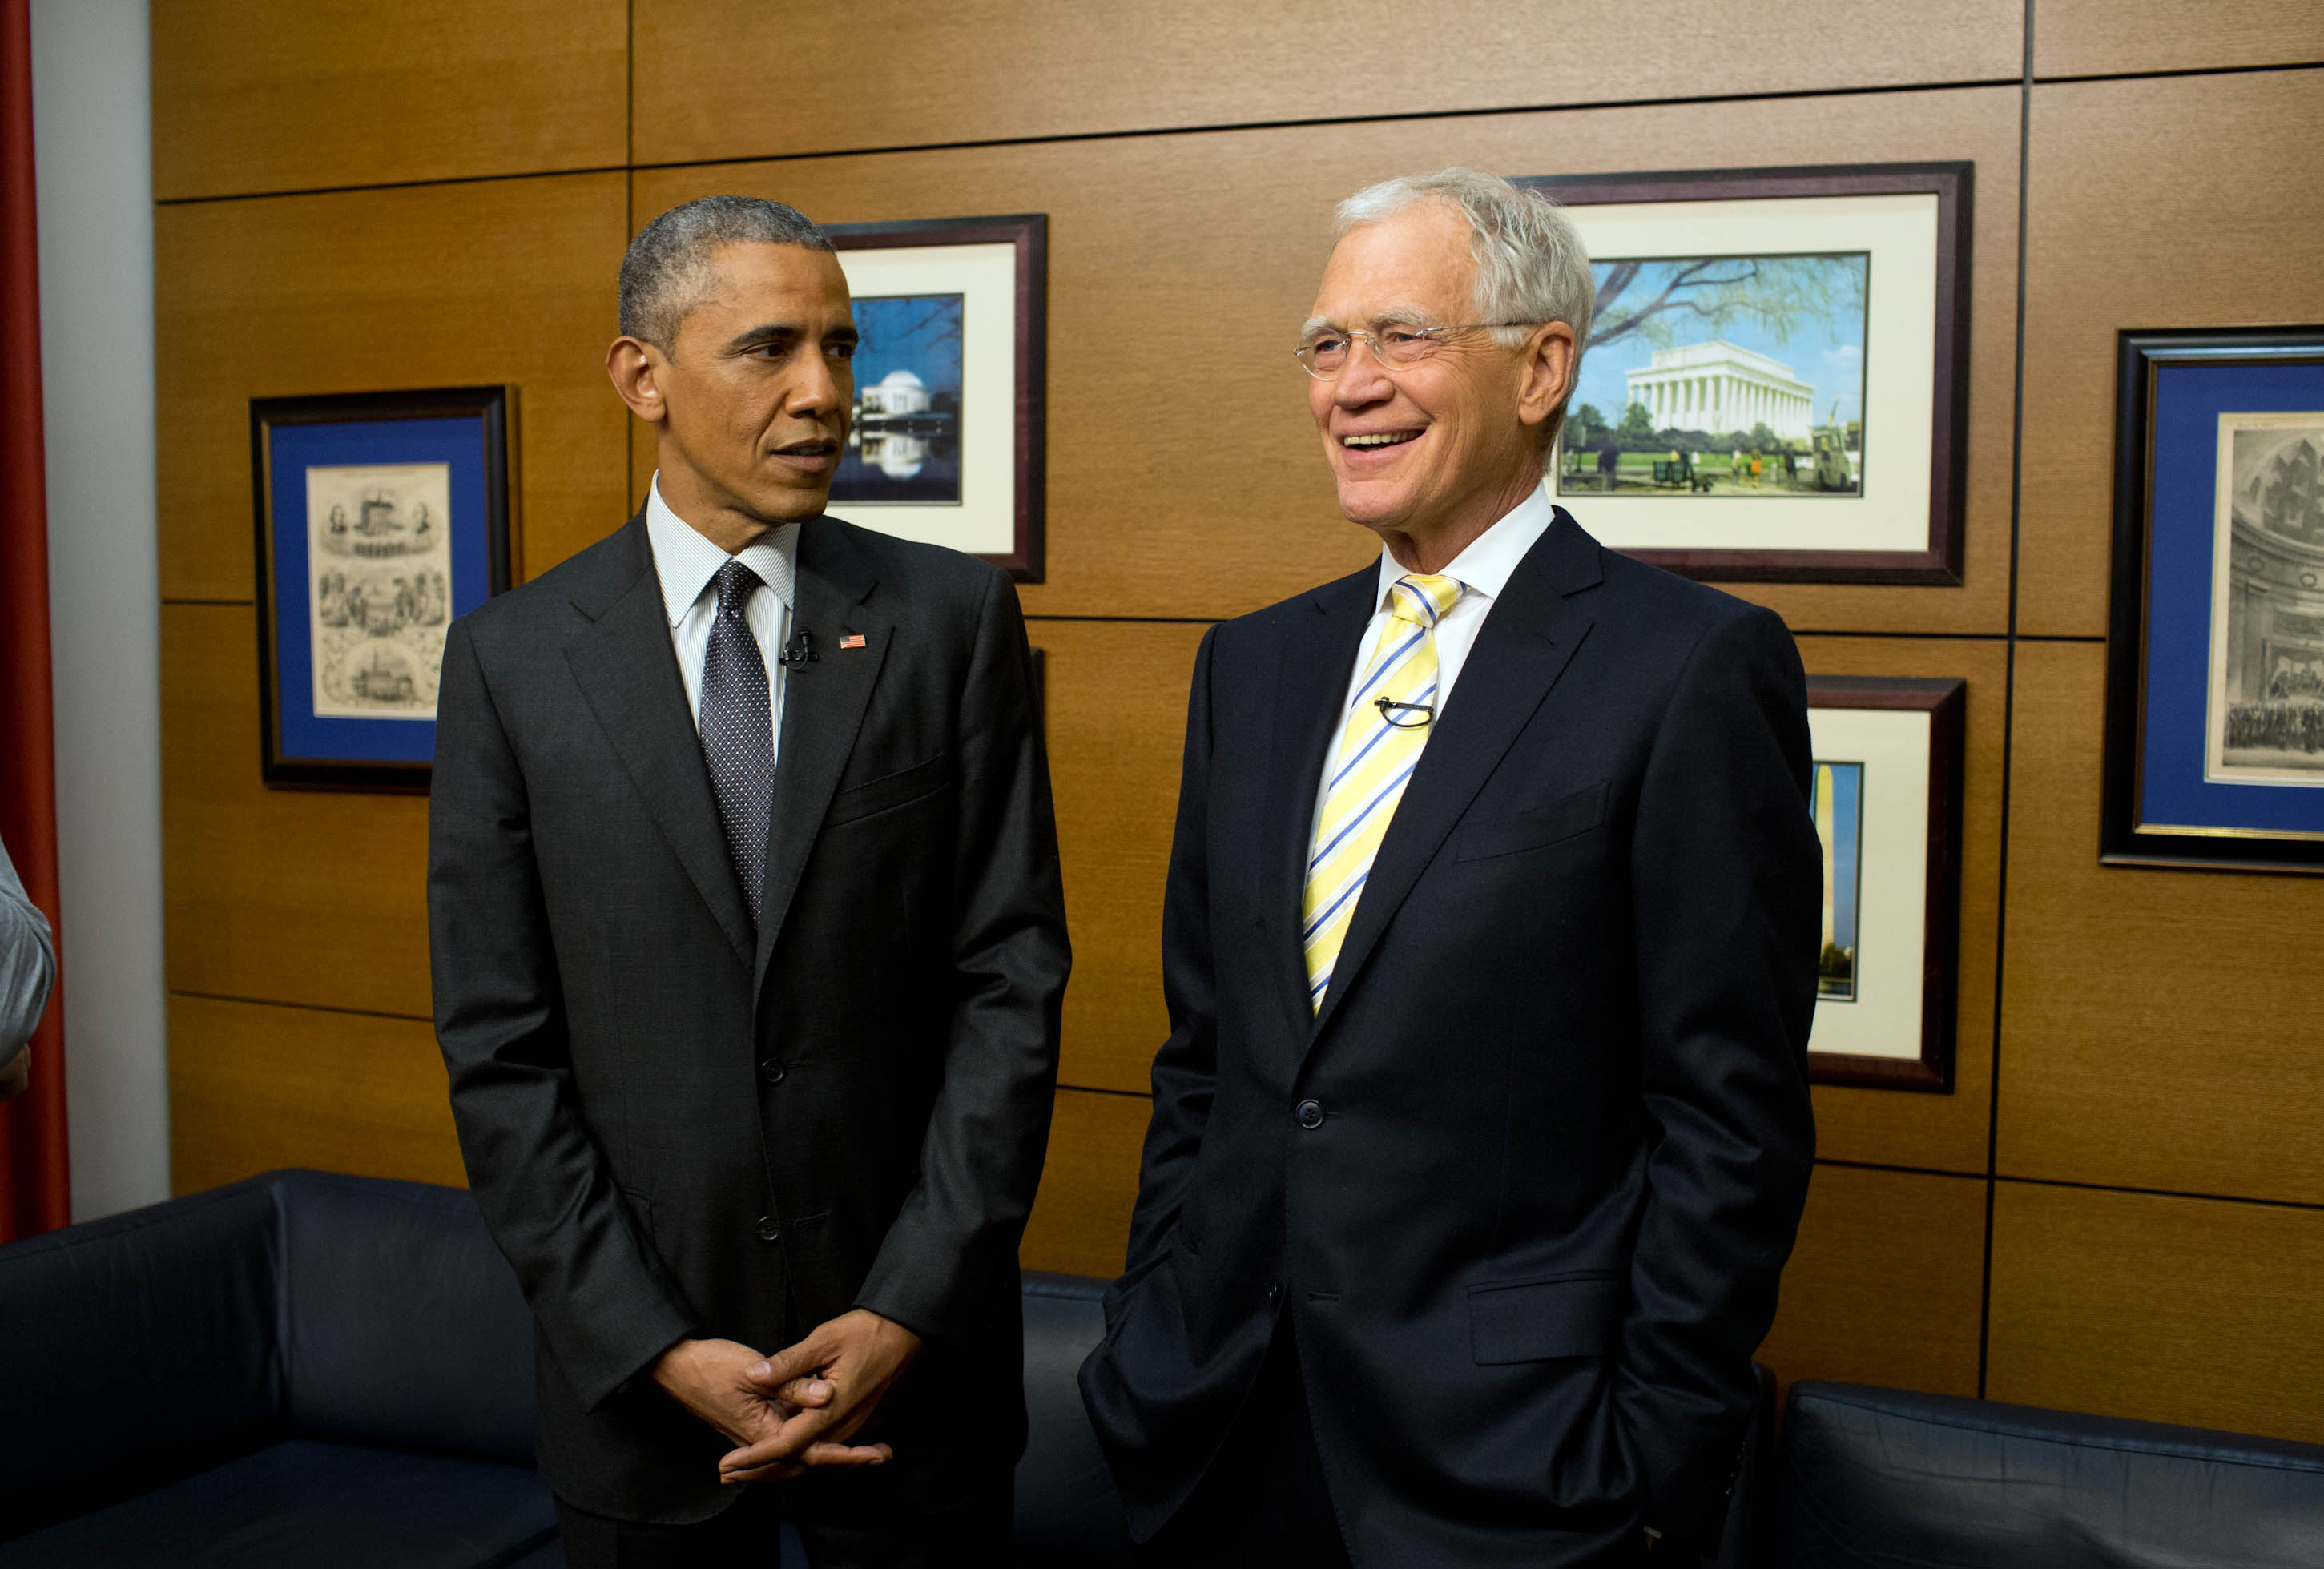 President Obama Chats with Letterman 2015